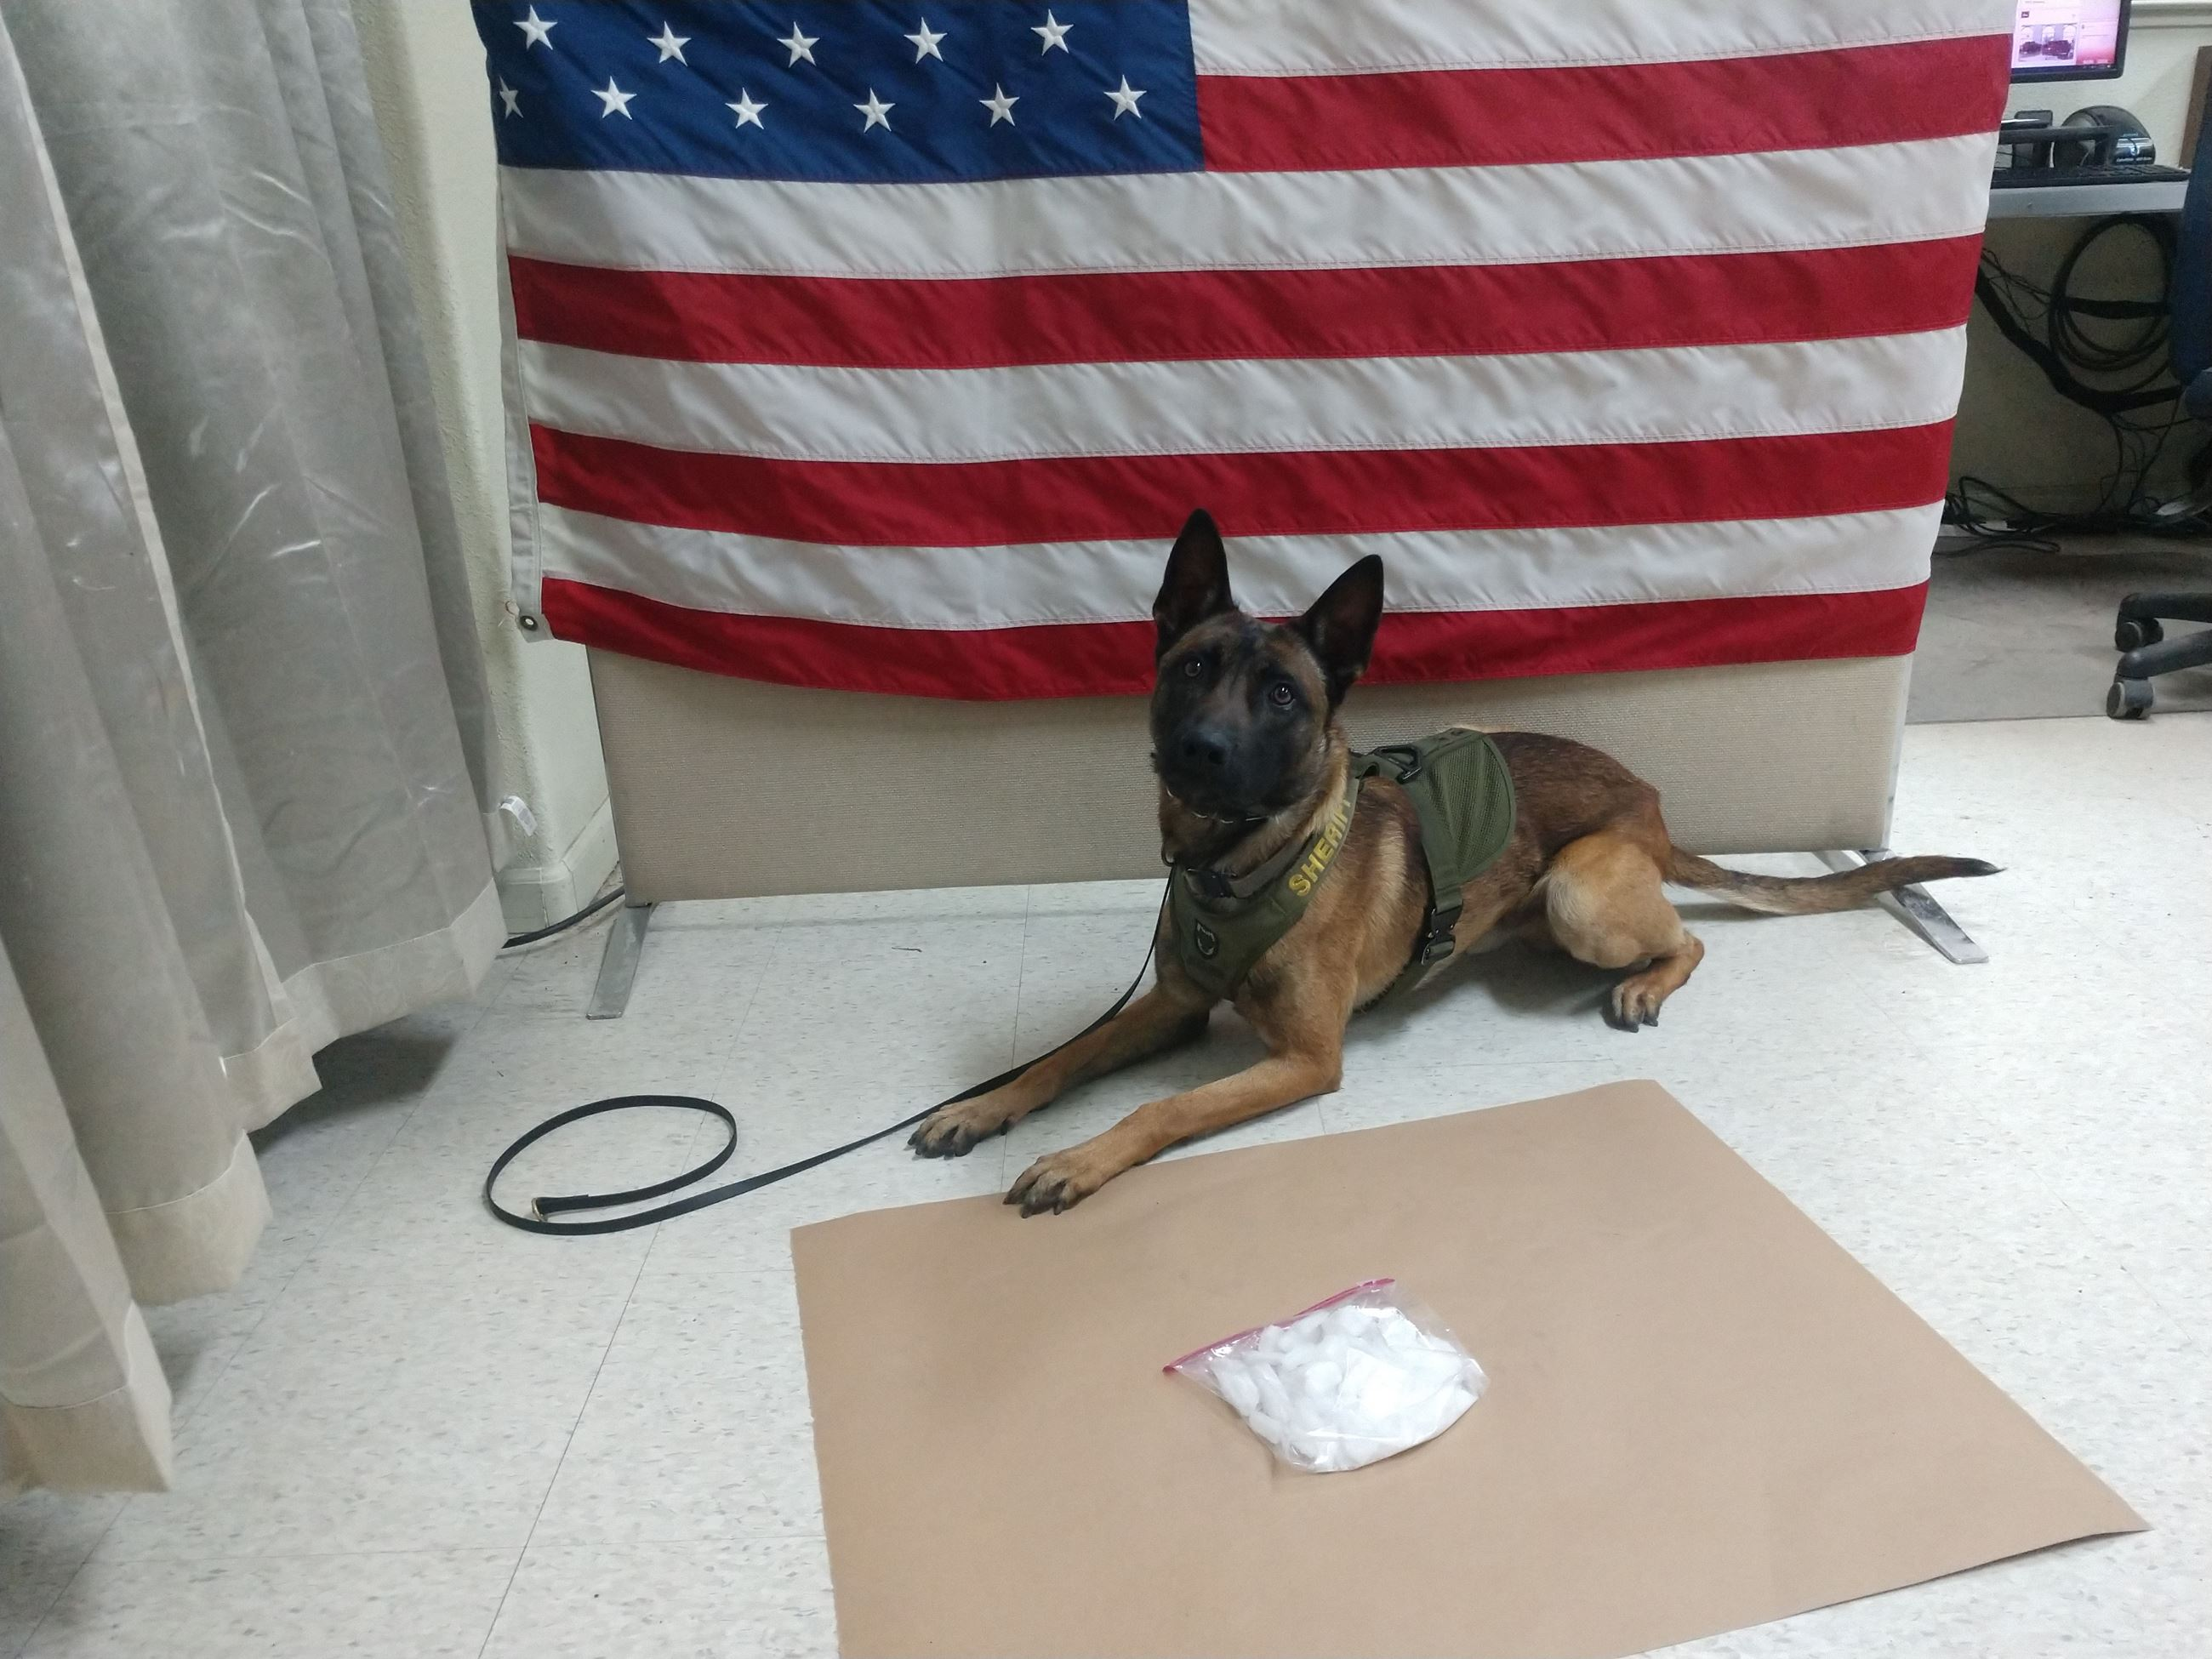 K9 Yahtzee with methamphetamine